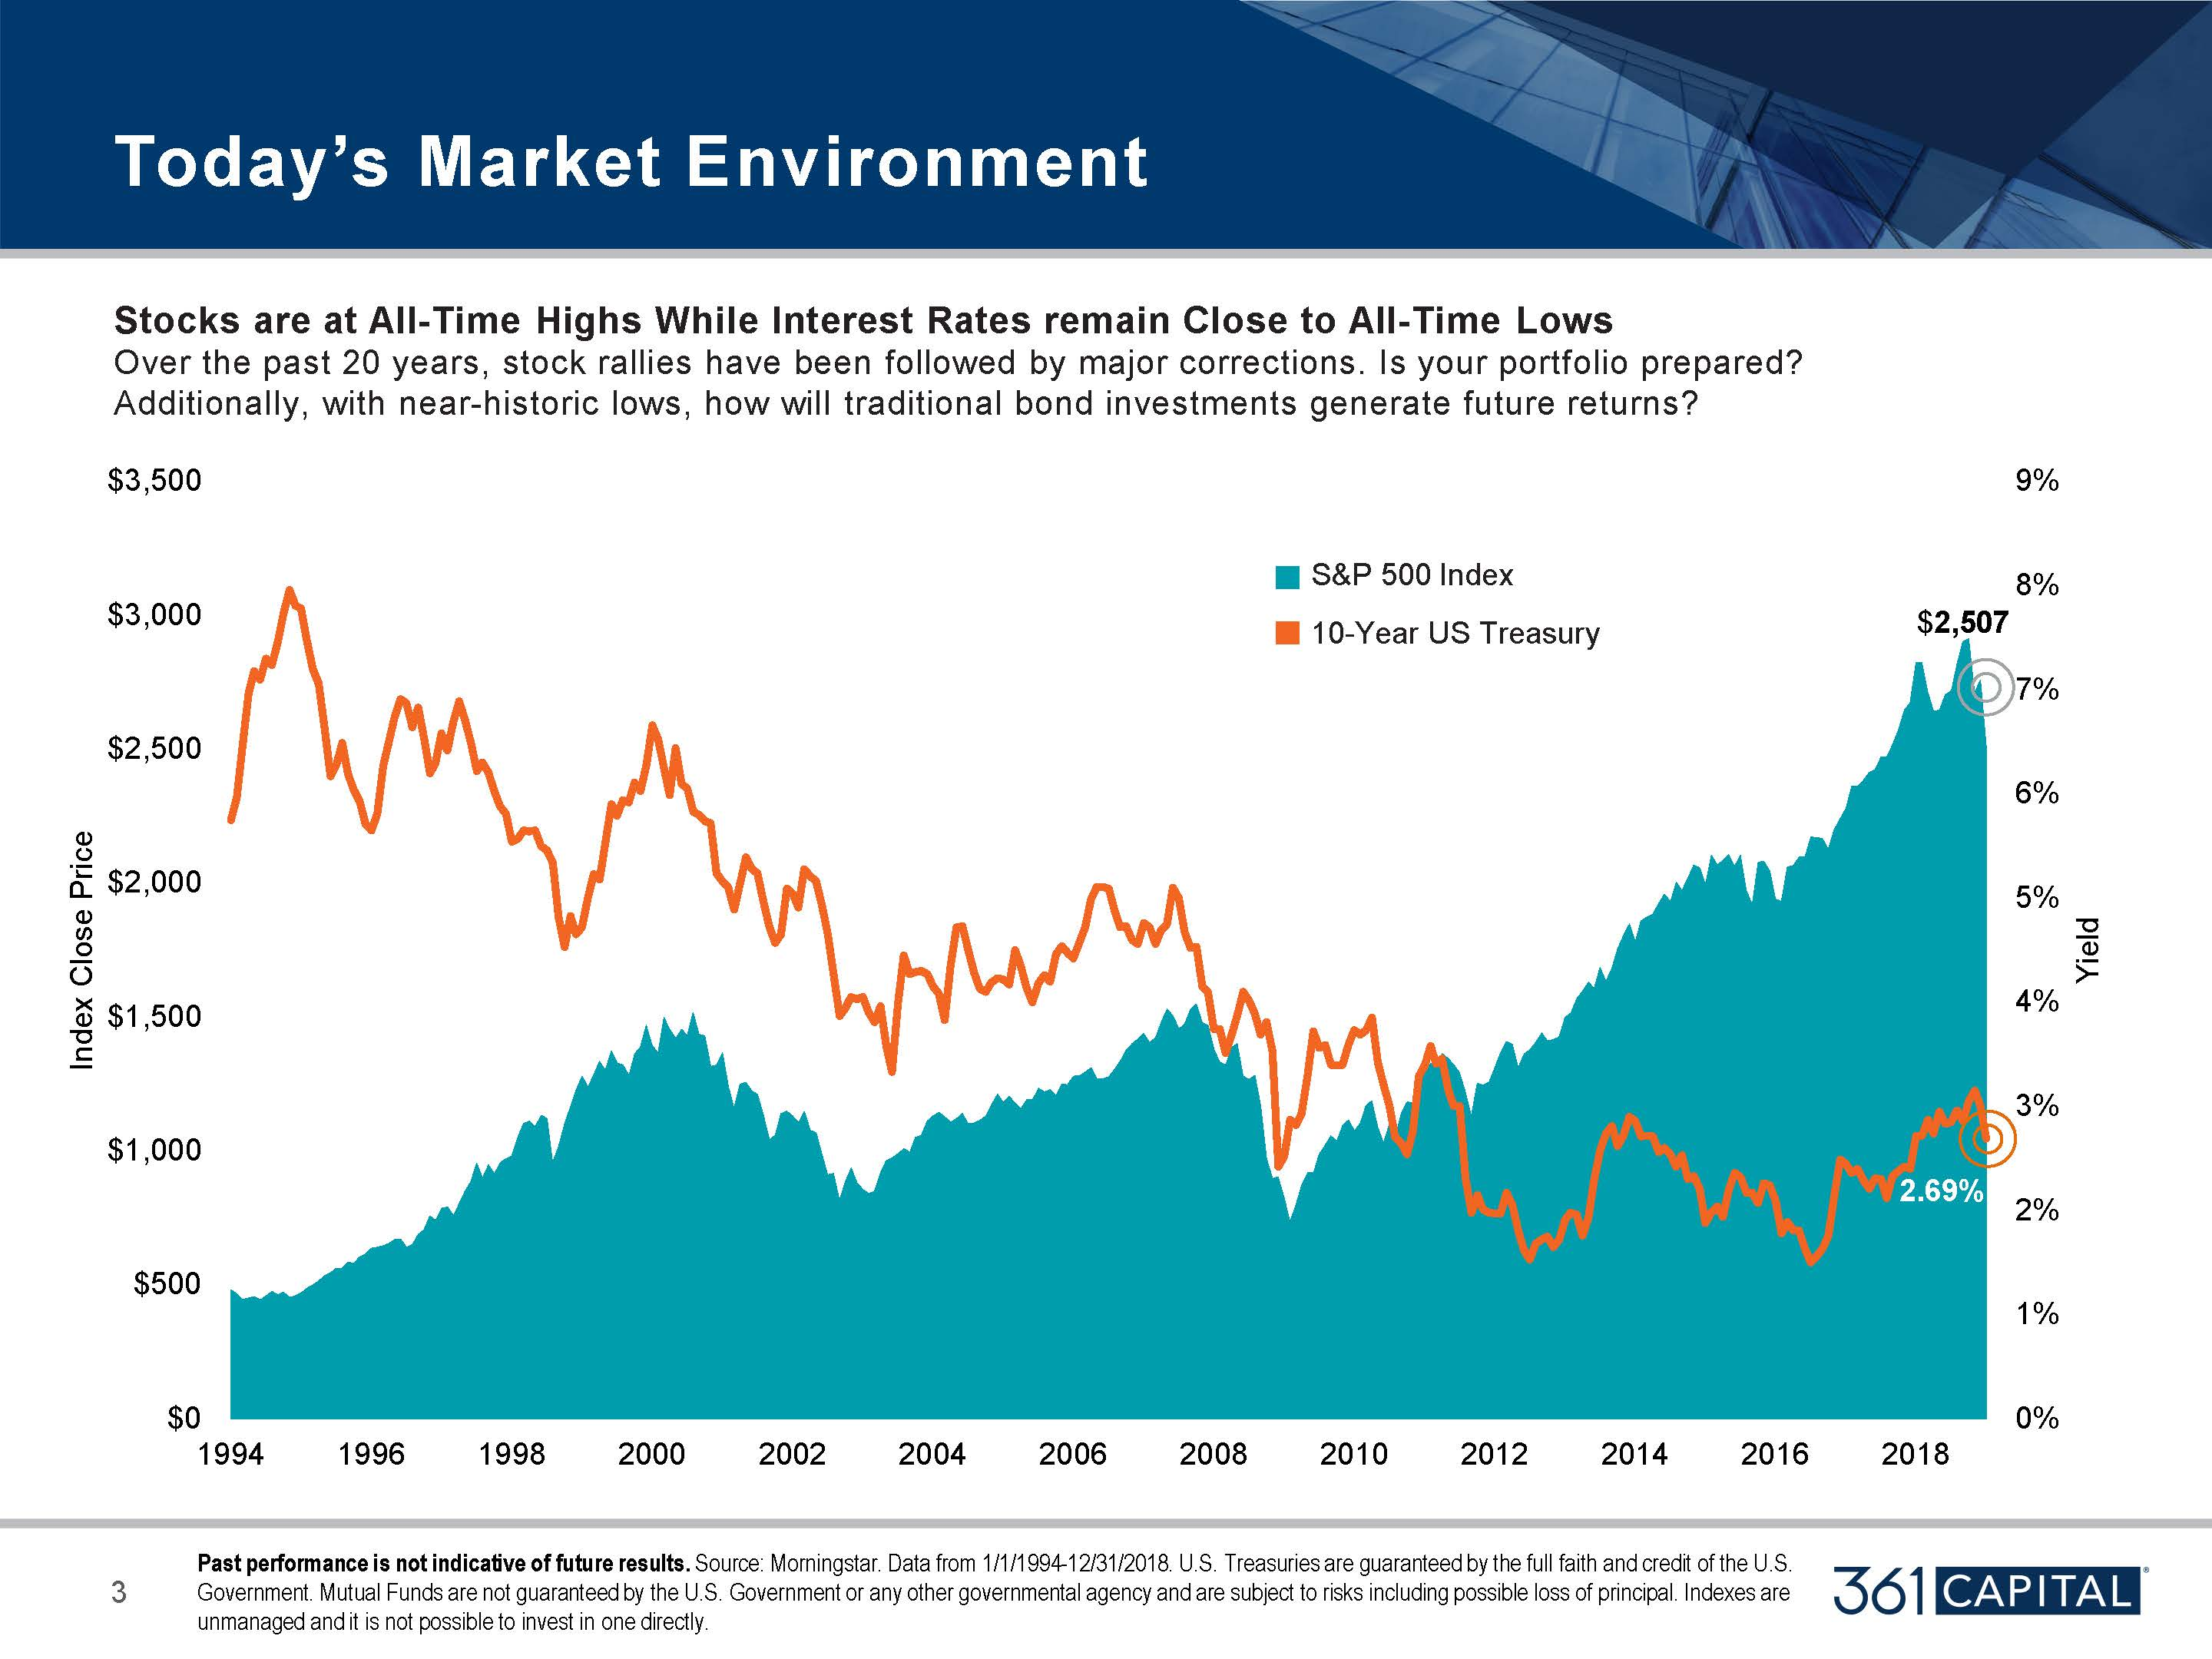 Stocks are at all time highs while interest rates remain close to all time lows